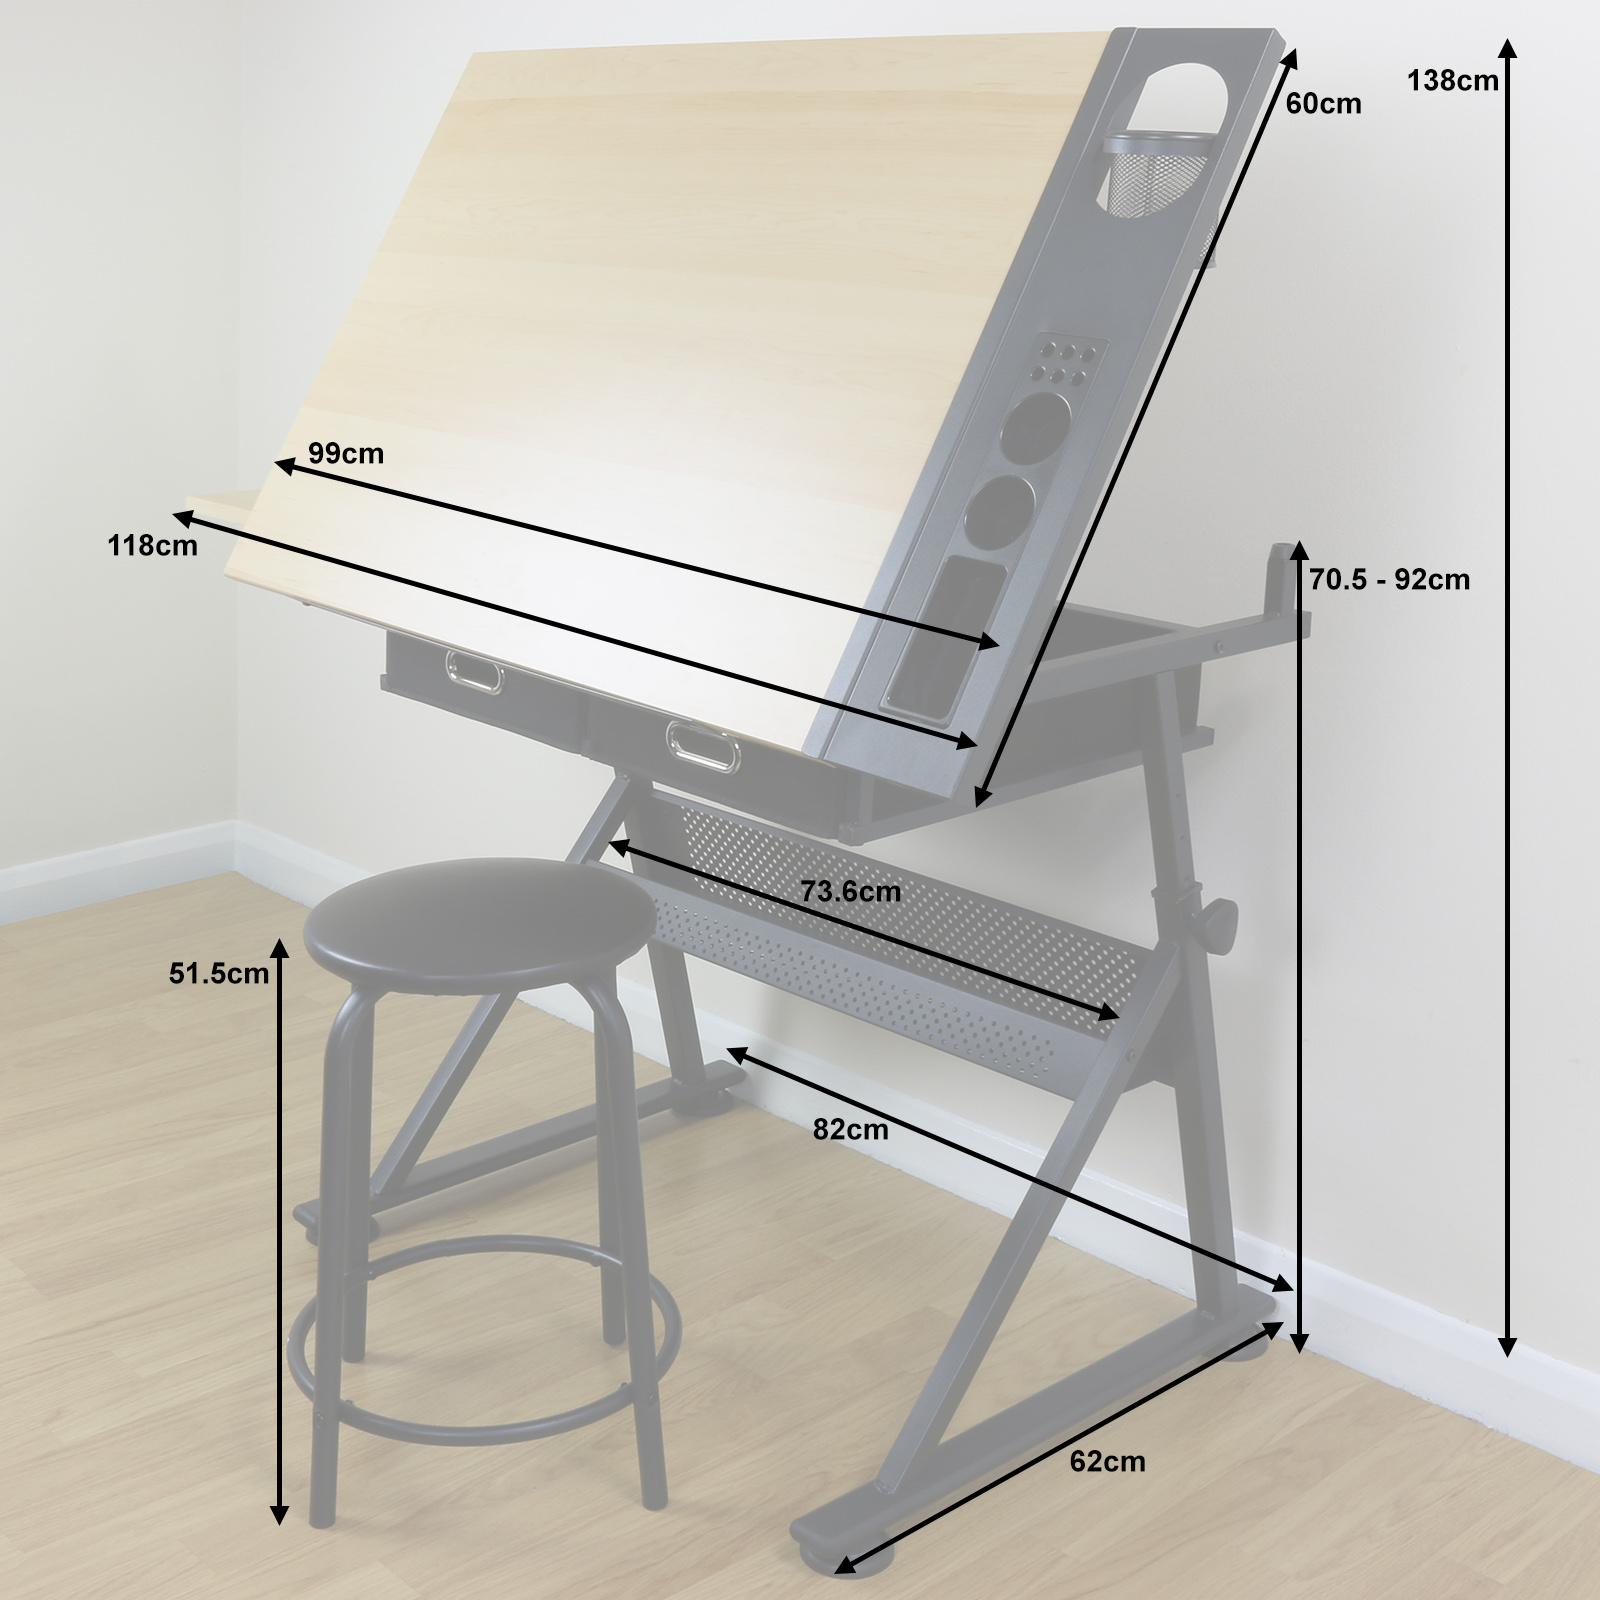 architect office supplies. Sentinel Adjustable Drawing Board Drafting Table With Stool Craft Architect Desk Stand Office Supplies